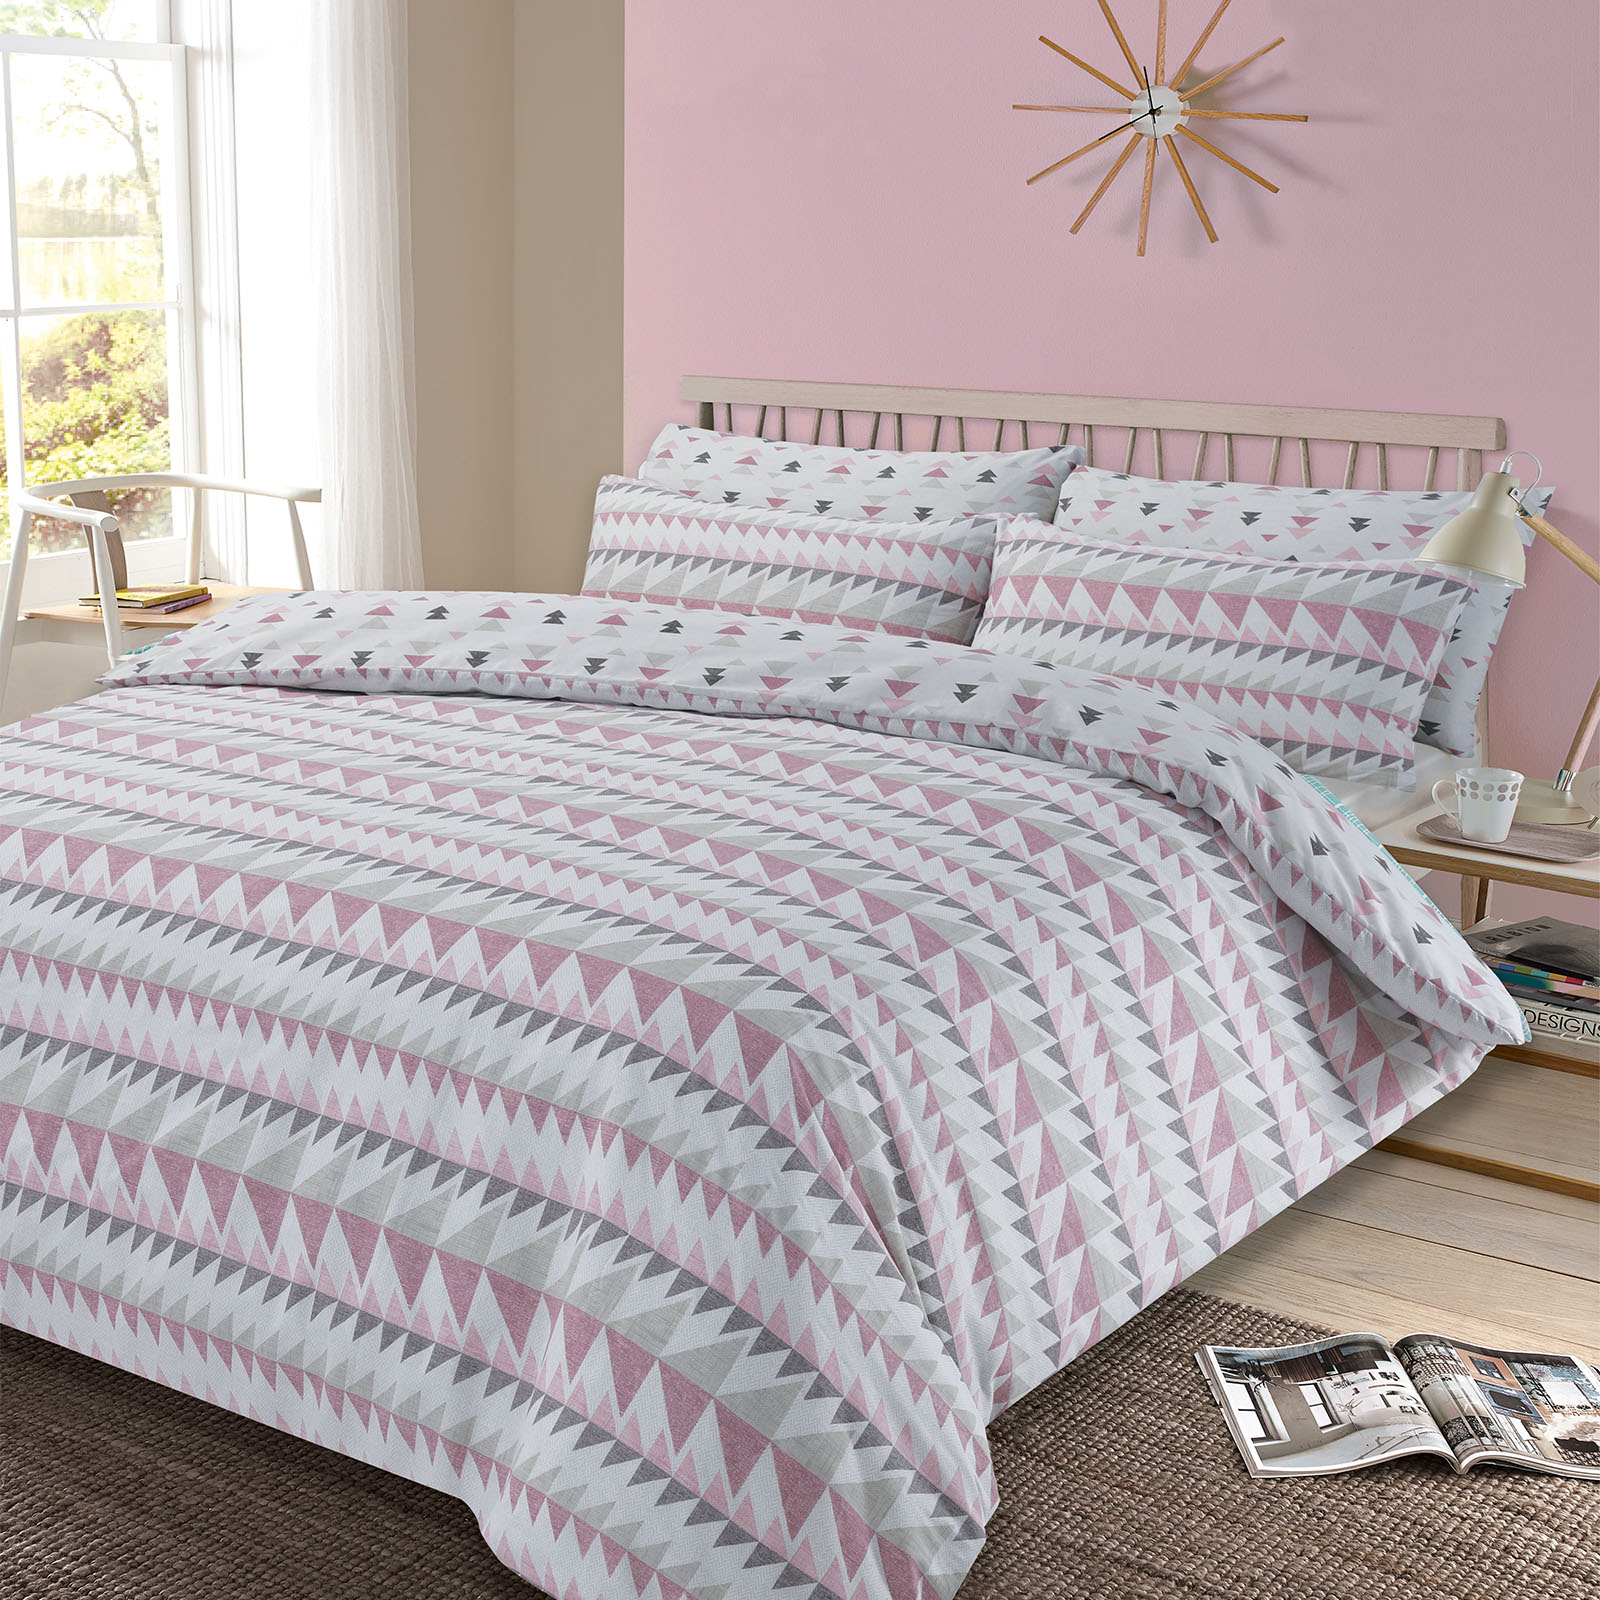 Bedding online at Zando with the BEST prices. Shop now and get SAFE and SECURE payment options with FAST and FREE delivery anywhere in South Africa. Spend R - Get R OFF* - Learn More Spend R Pierre Cardin Enya Check Duvet Cover Set Check Multi.